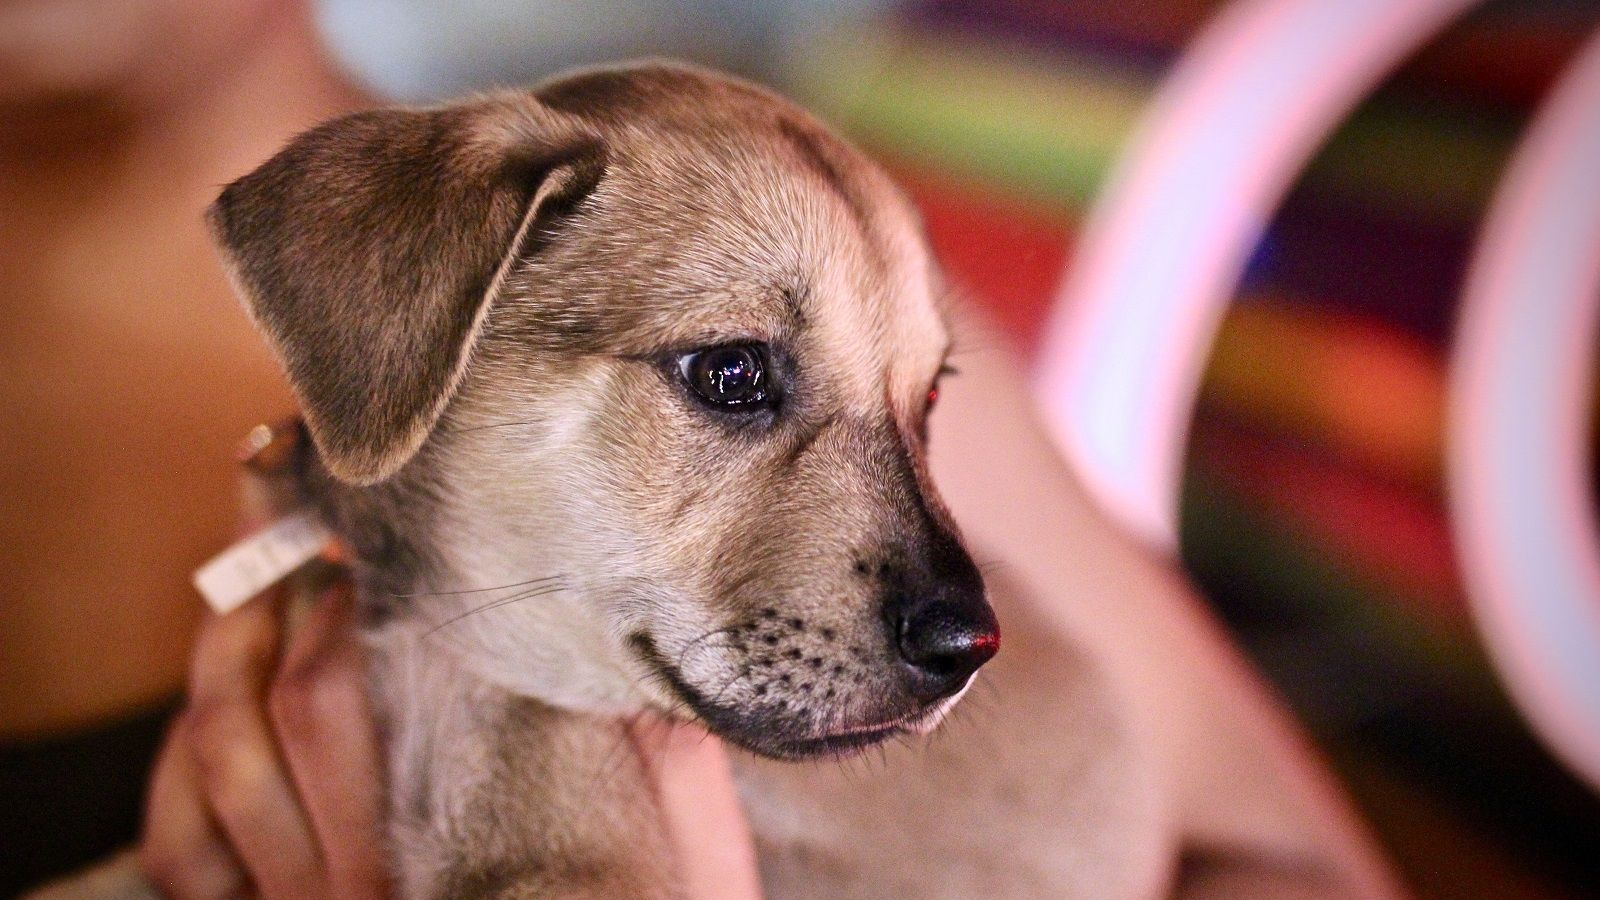 The best animal charities to support right now Puppies